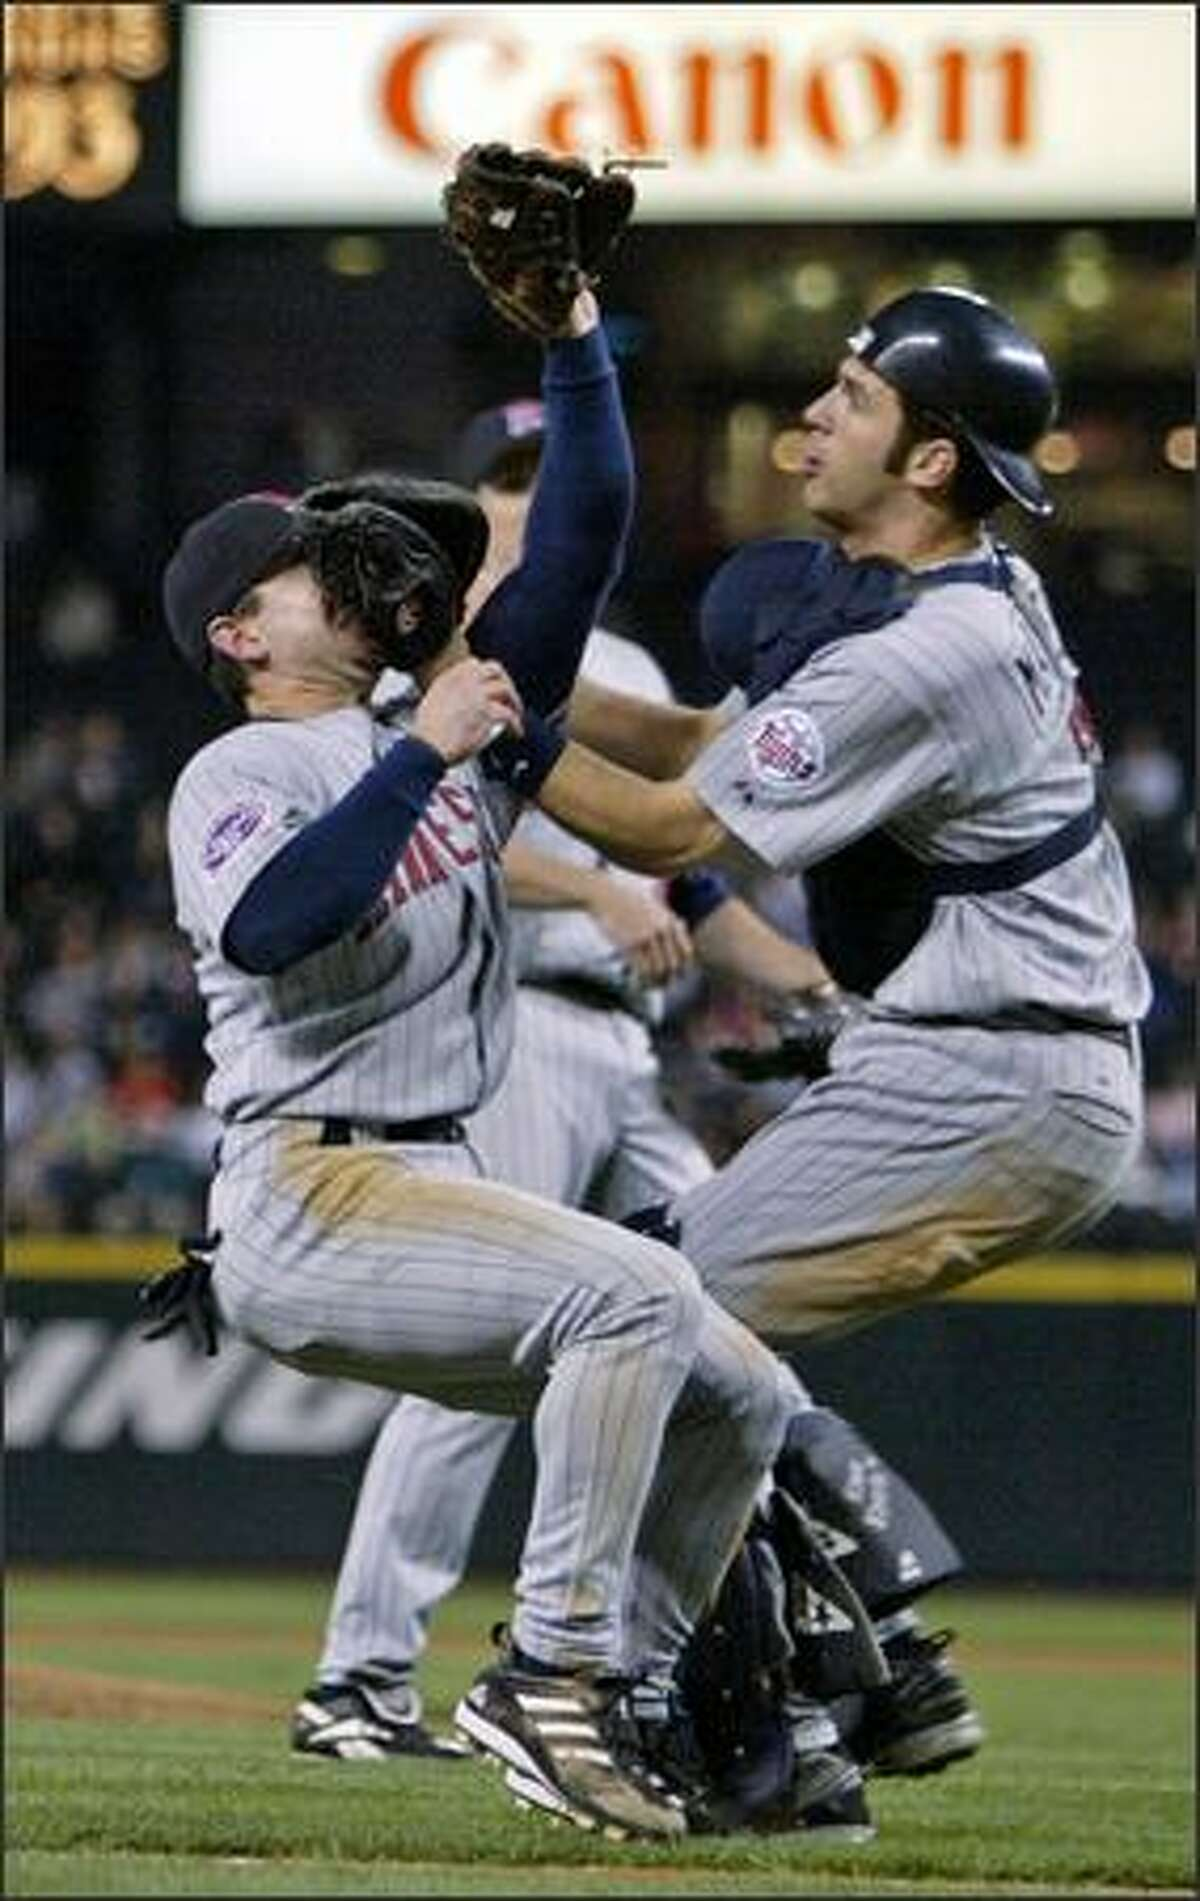 Minnesota Twins catcher Joe Mauer whacks third baseman Nick Punto as they try unsuccessfully to catch Ichiro Suzuki's bunt in the 12th inning of Wednesday's game. The Twins won 7-3 after 14 innings.